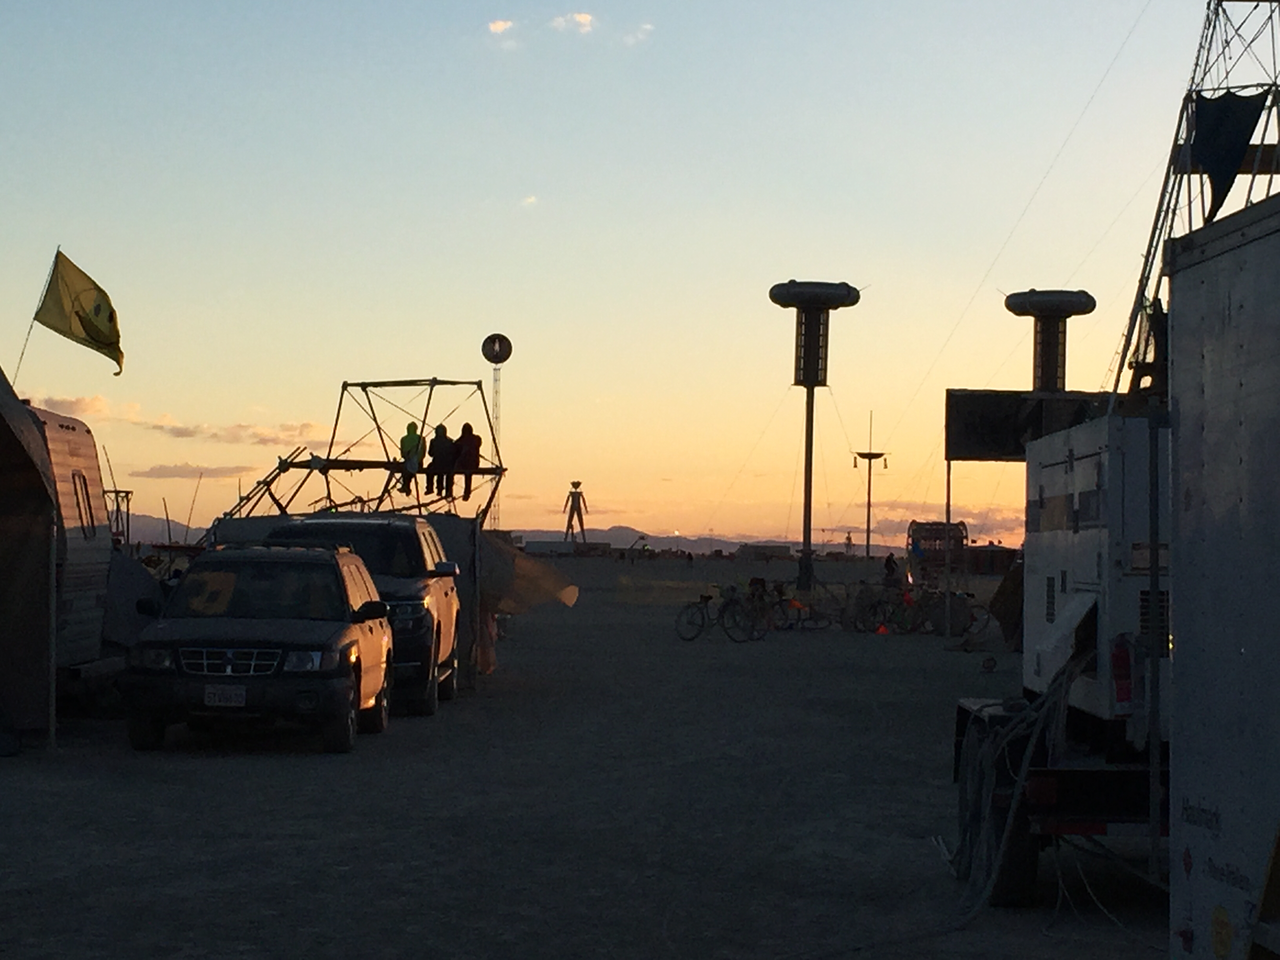 Sunrise on the Playa as viewed from Dustfish on Esplanade